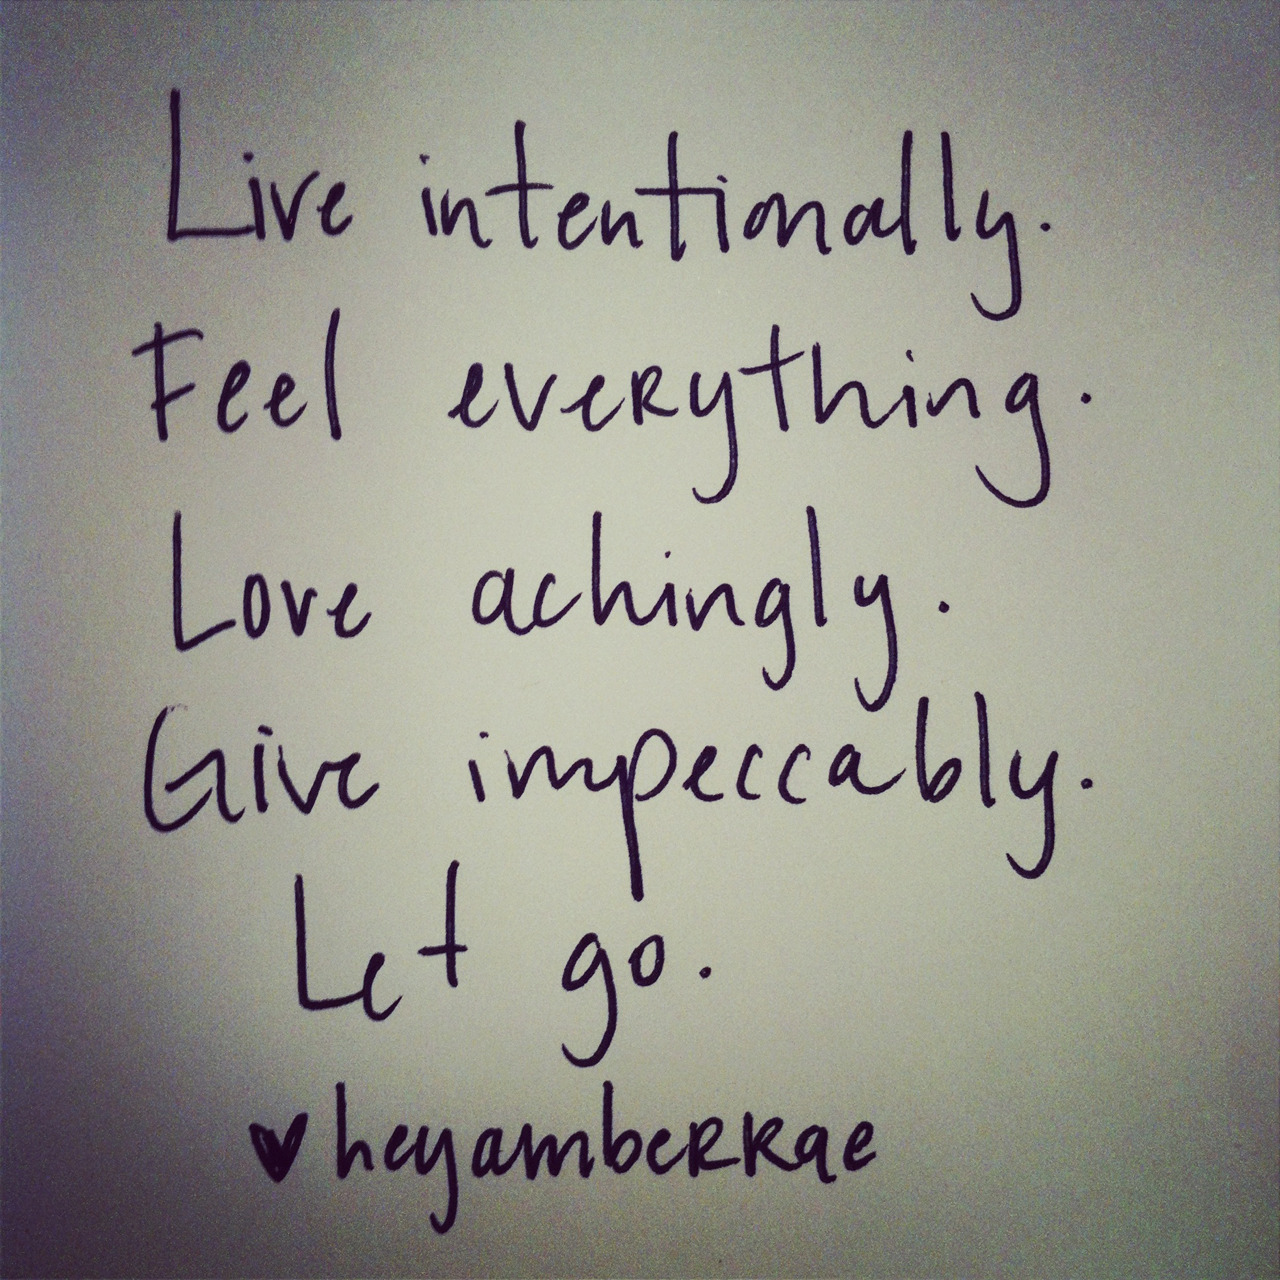 Live. Feel. Love. Give. Let go.